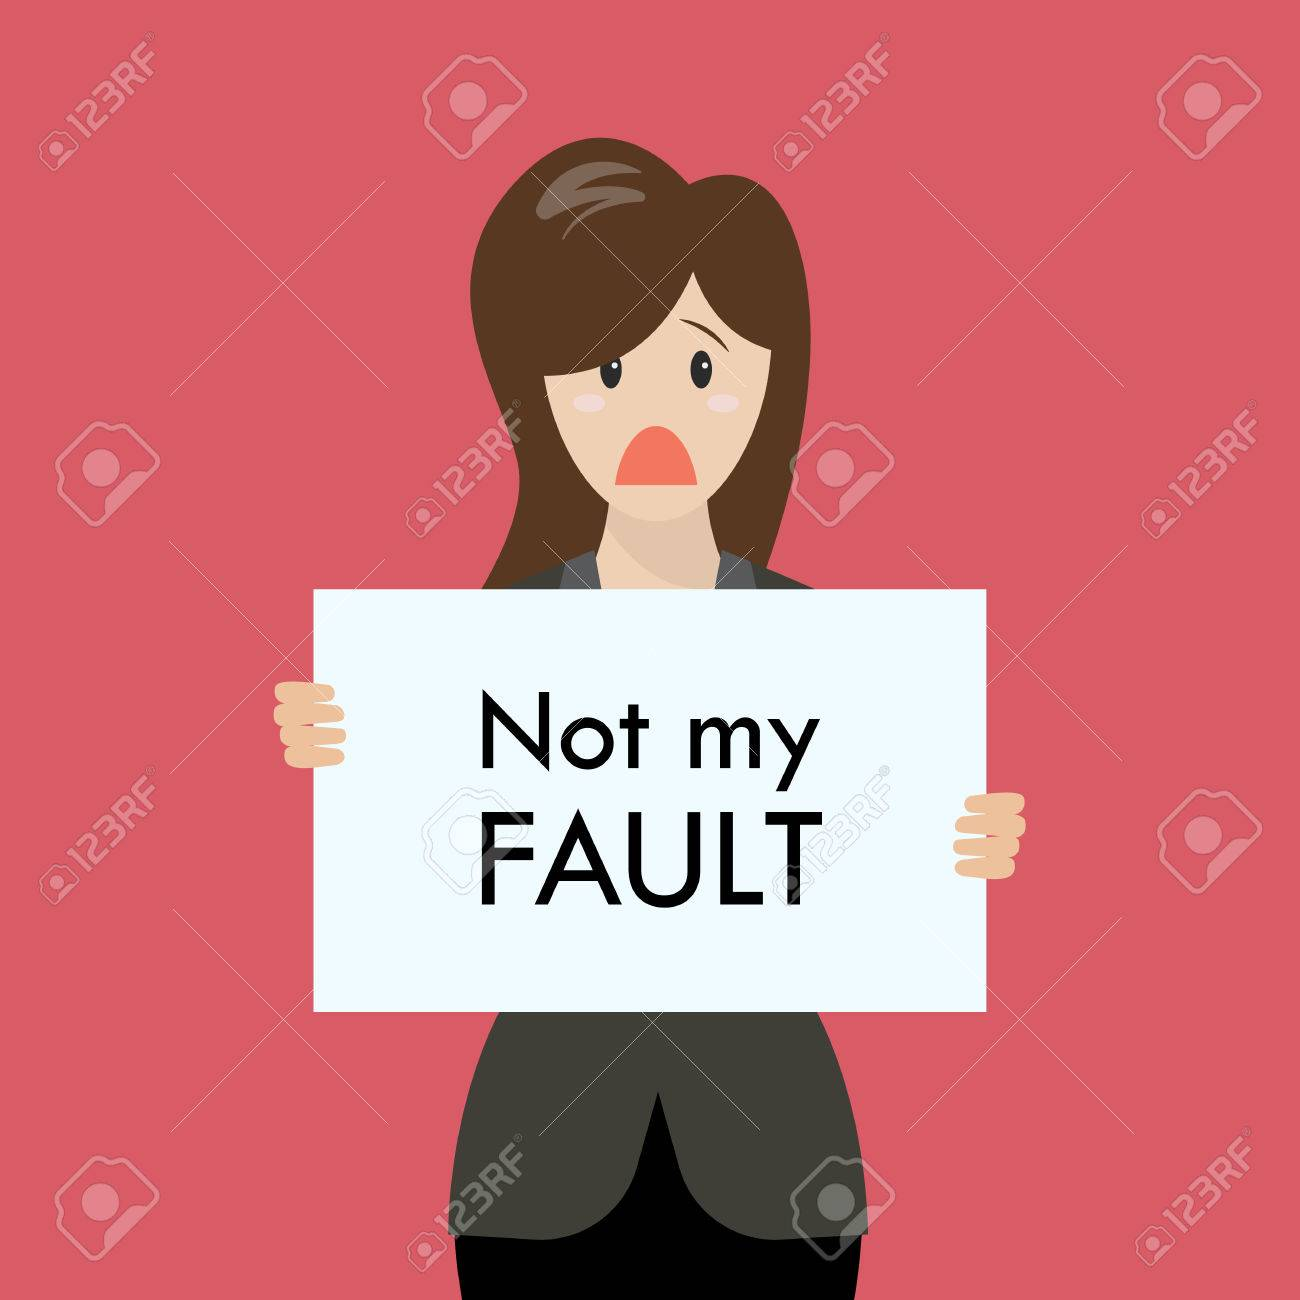 Image result for Not my fault